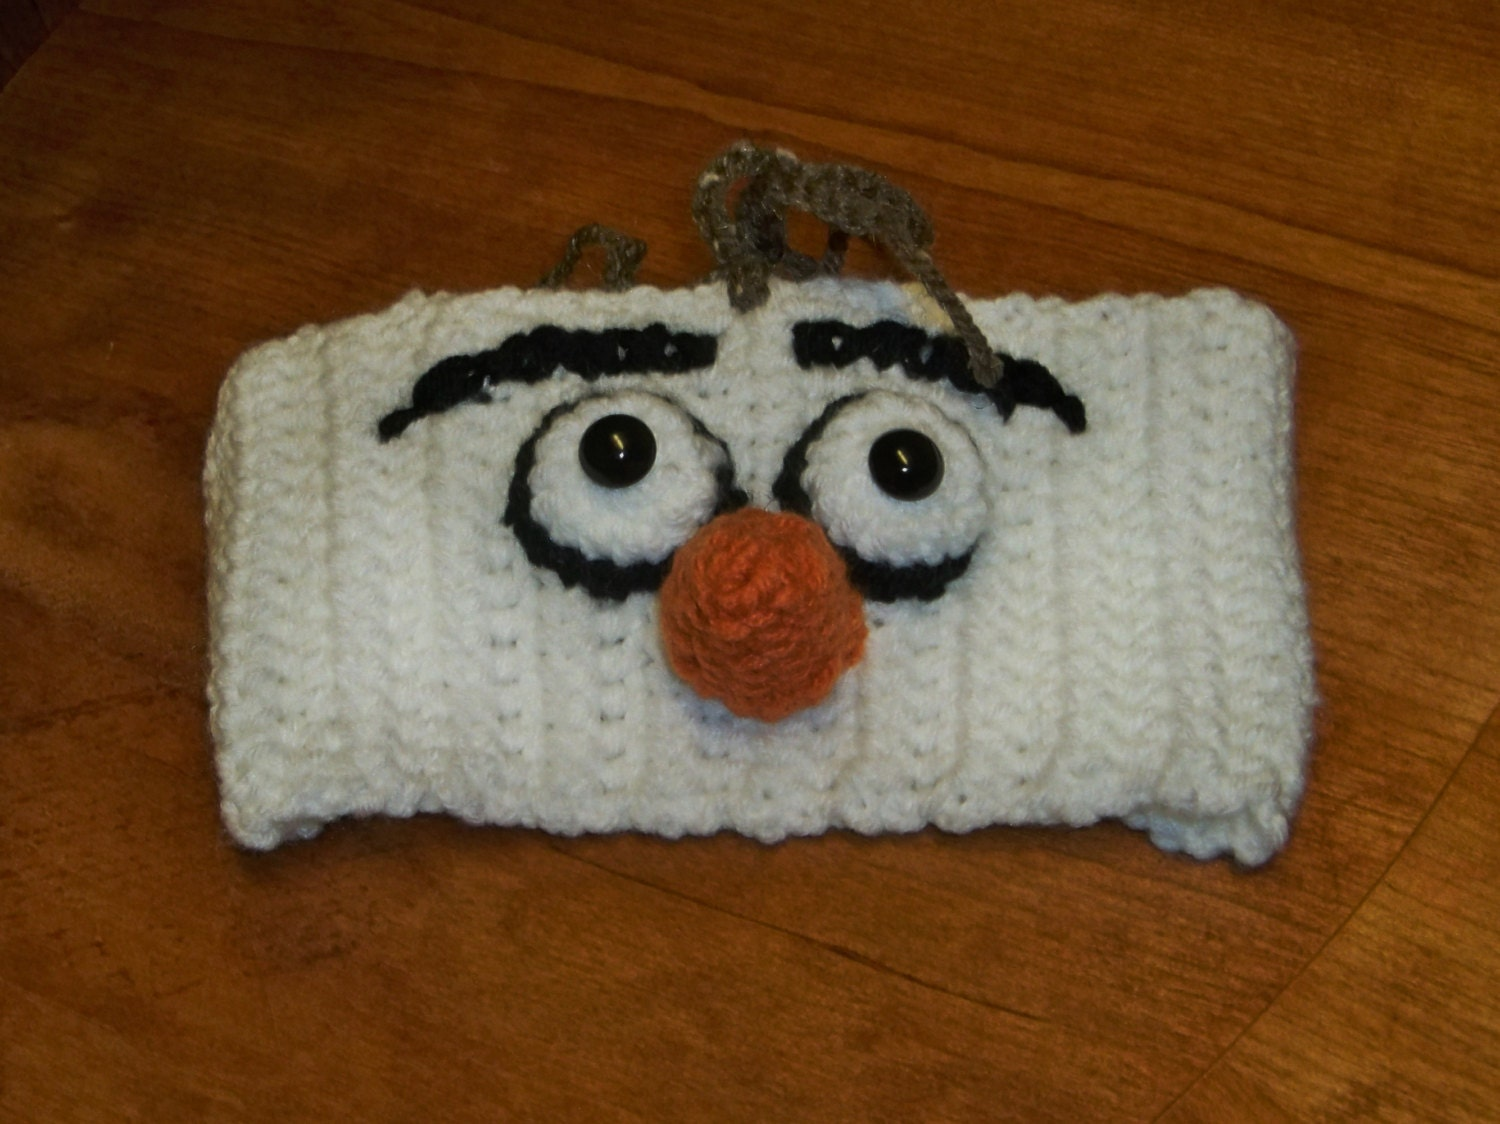 Crocheted Olaf the Snowman Headband from Frozen